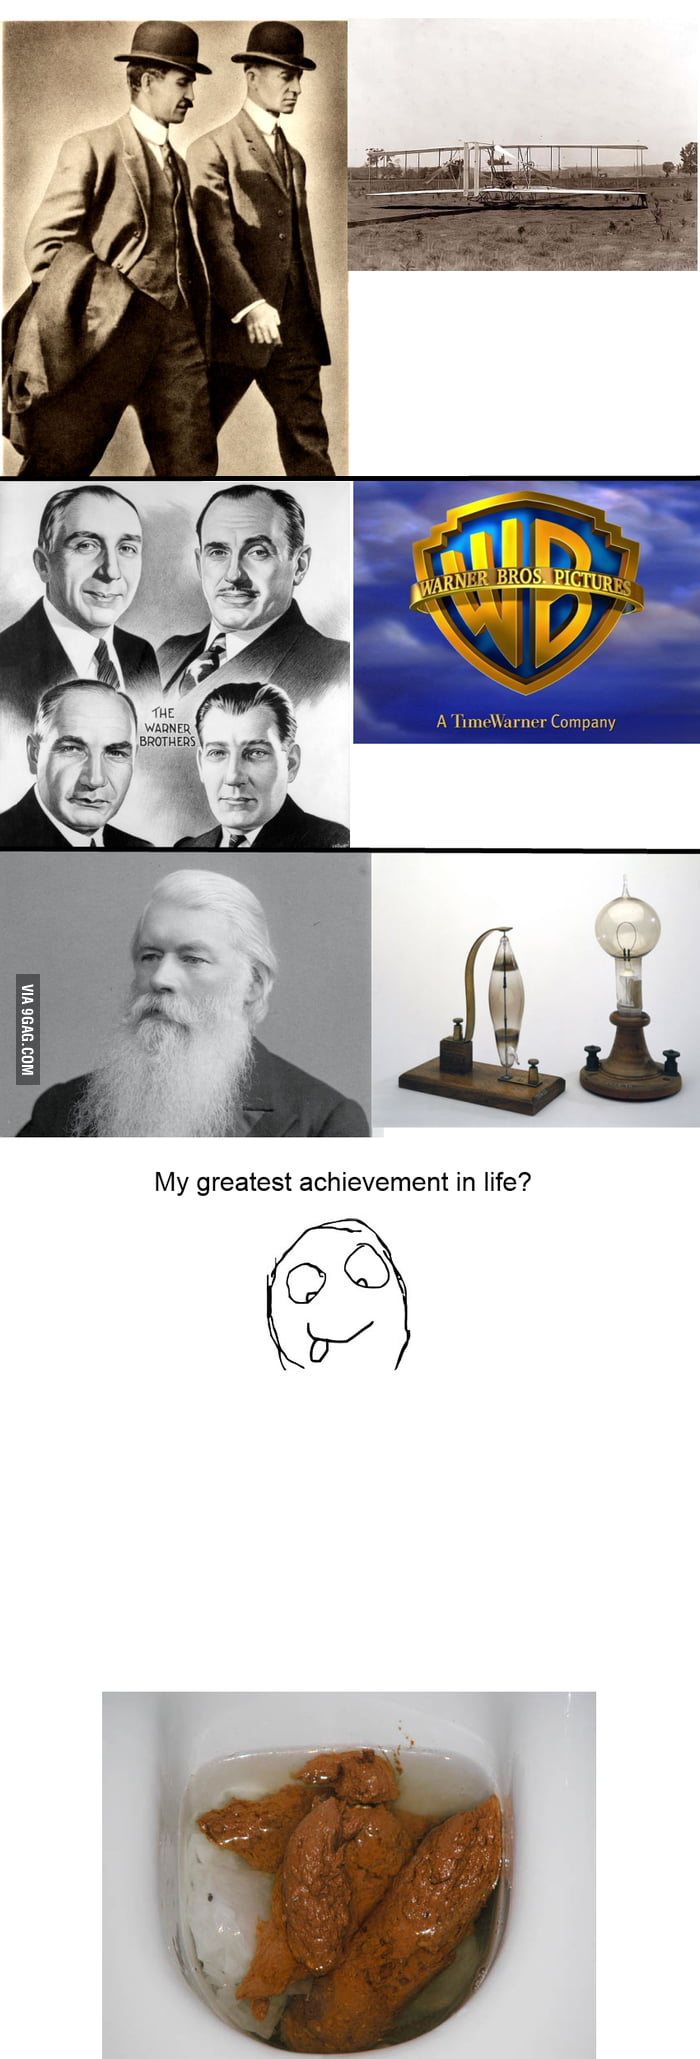 People and their greatest achievements in life.